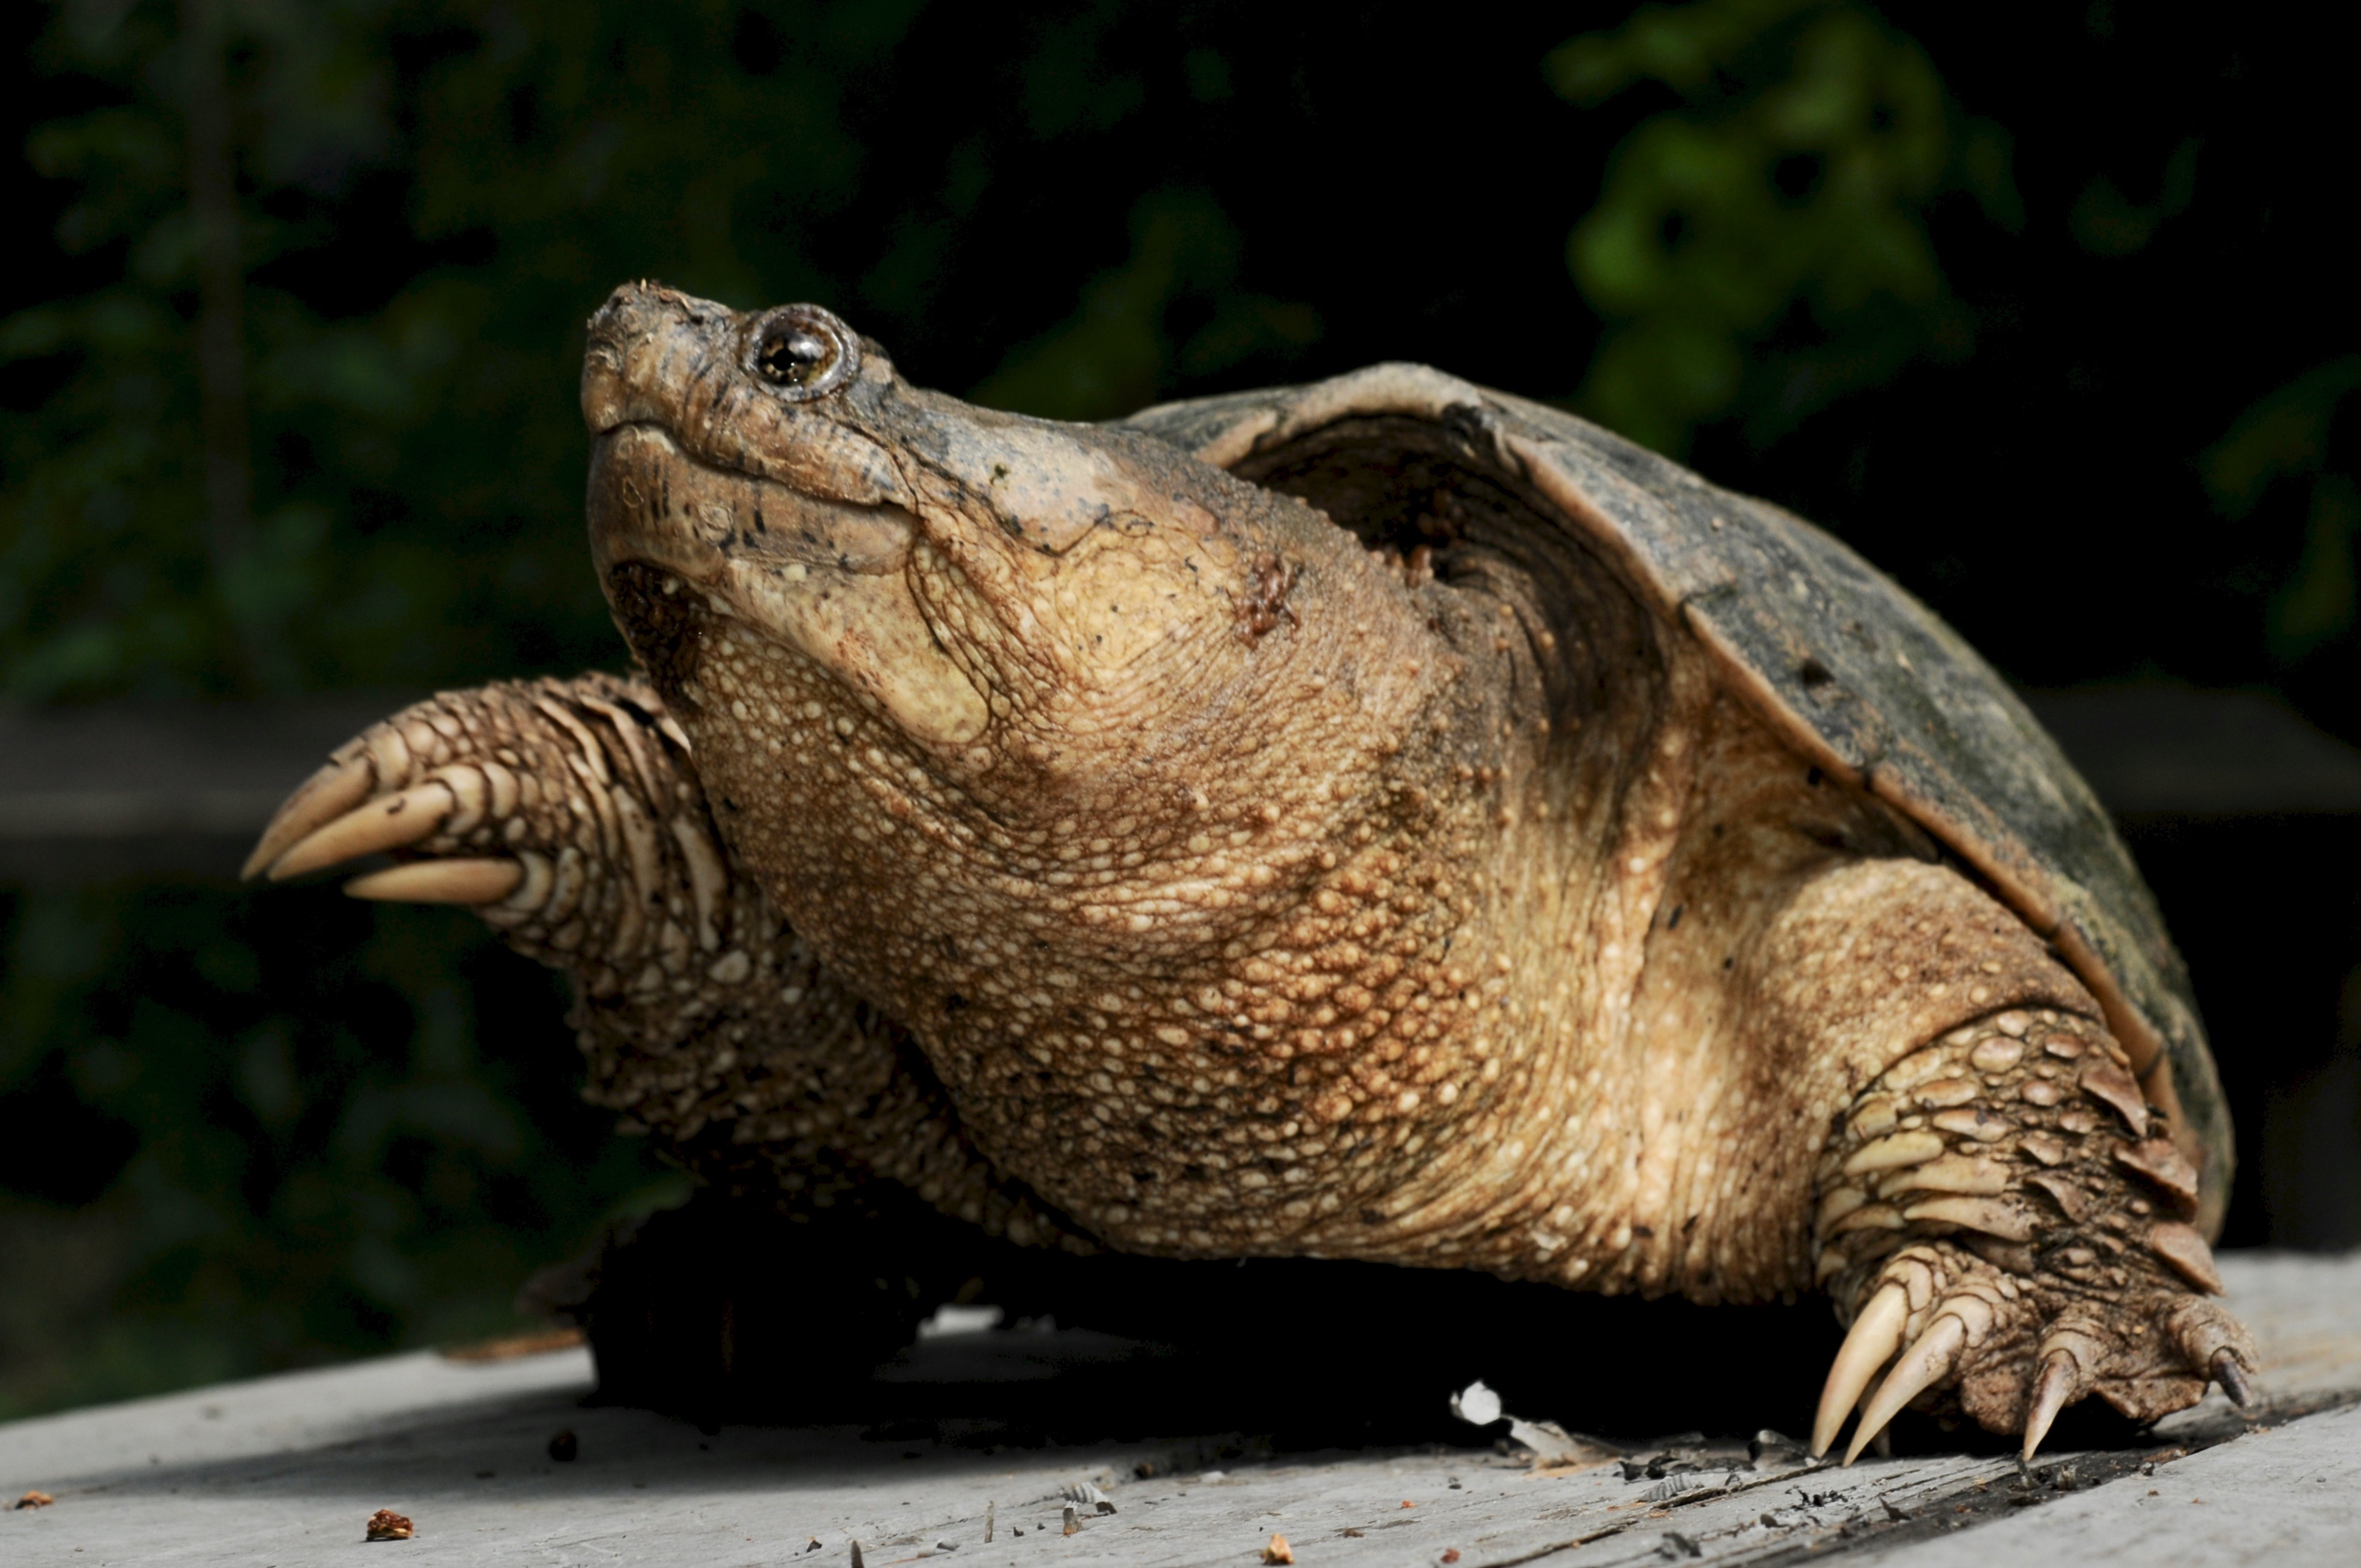 Common Snapping Turtle 128